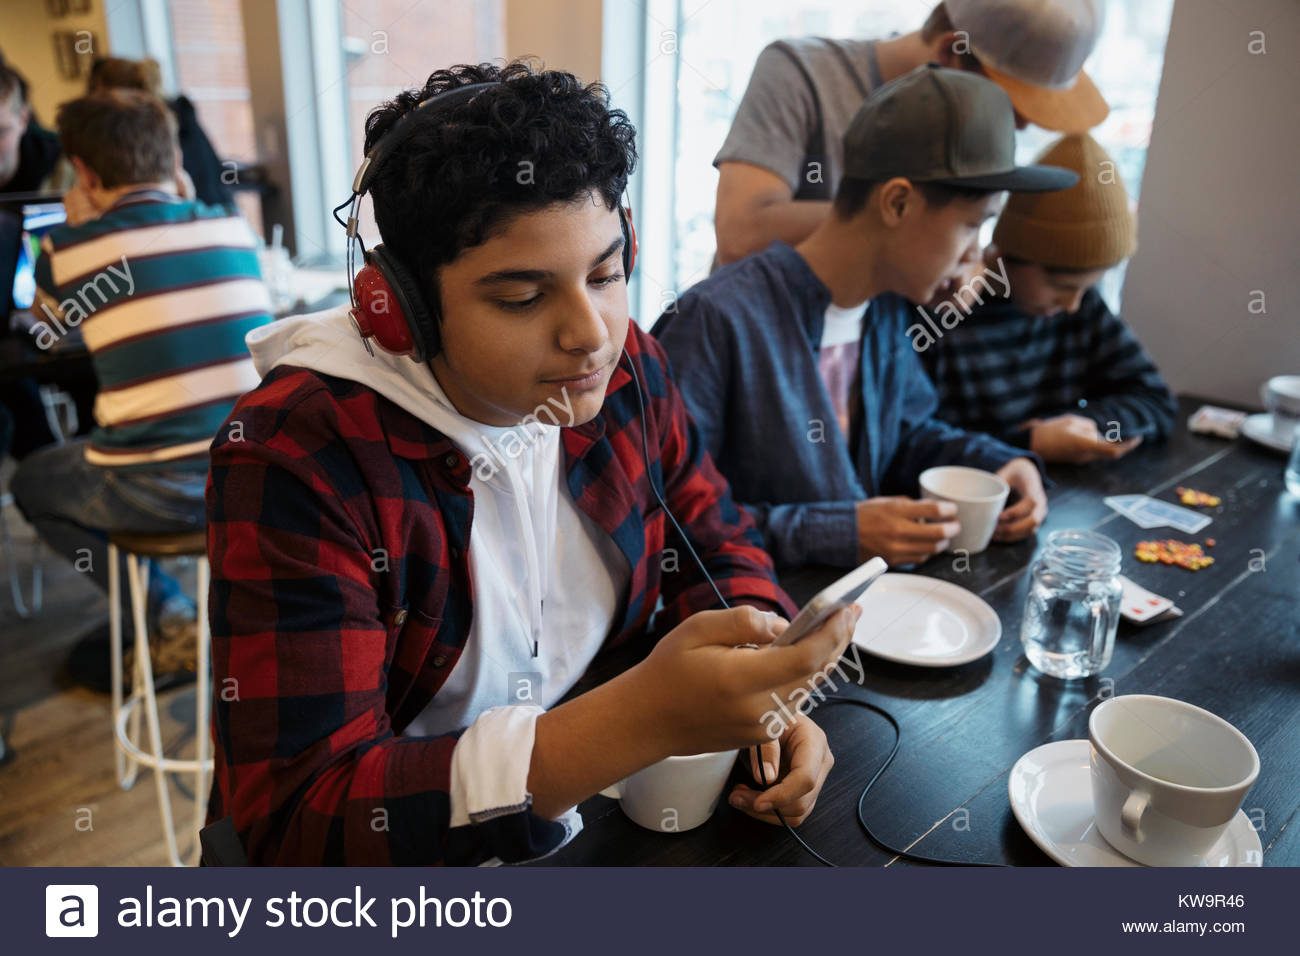 Middle Eastern tween boy with headphones listening to music with smart phone at cafe table - Stock Image